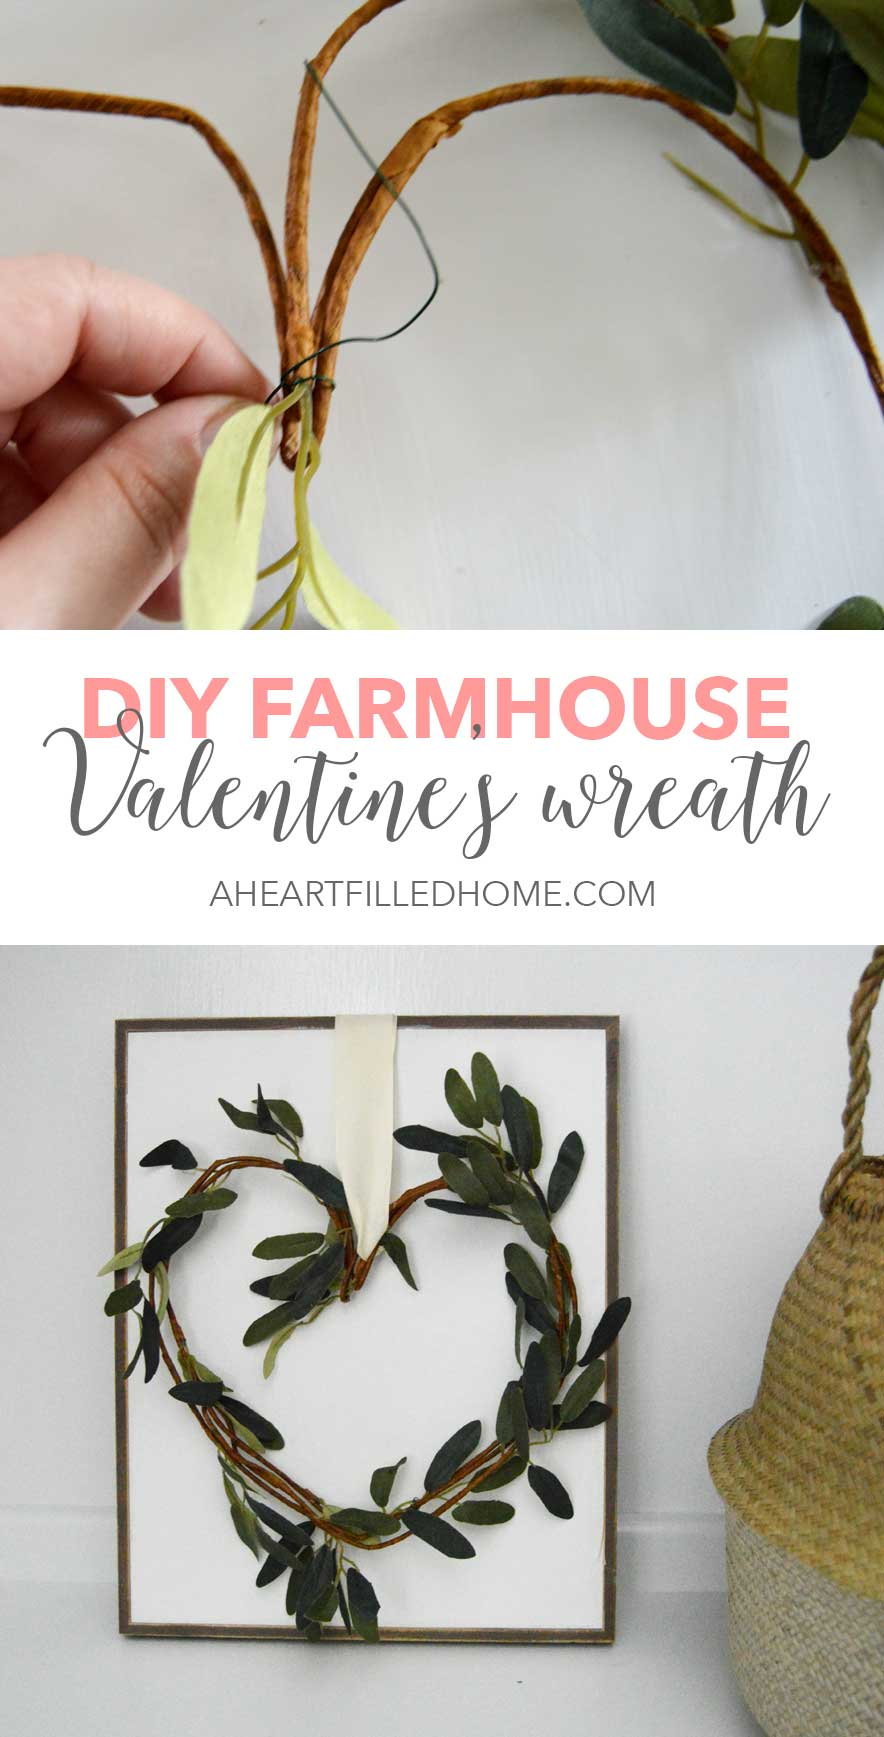 DIY Farmhouse Valentine's Wreath